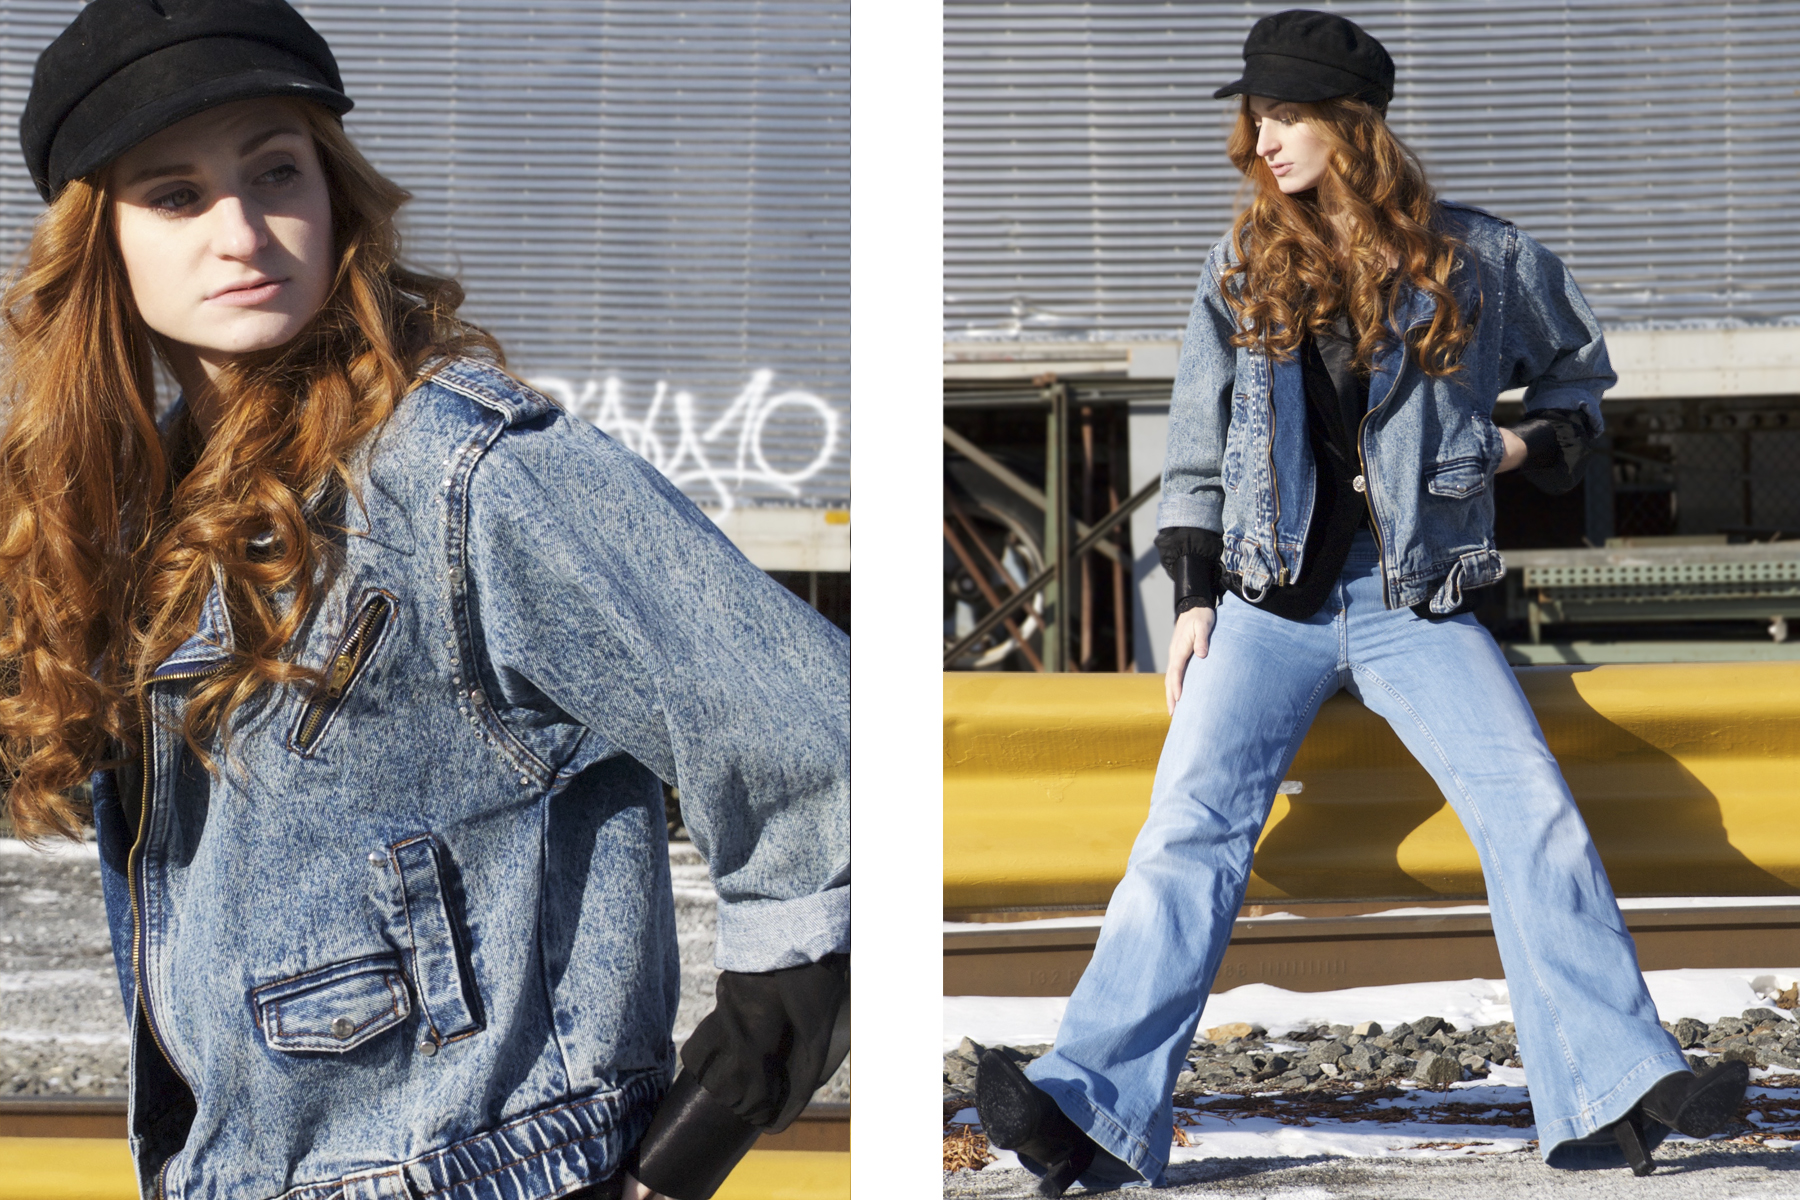 Redhead girl in jean jacket and hat by train tracks